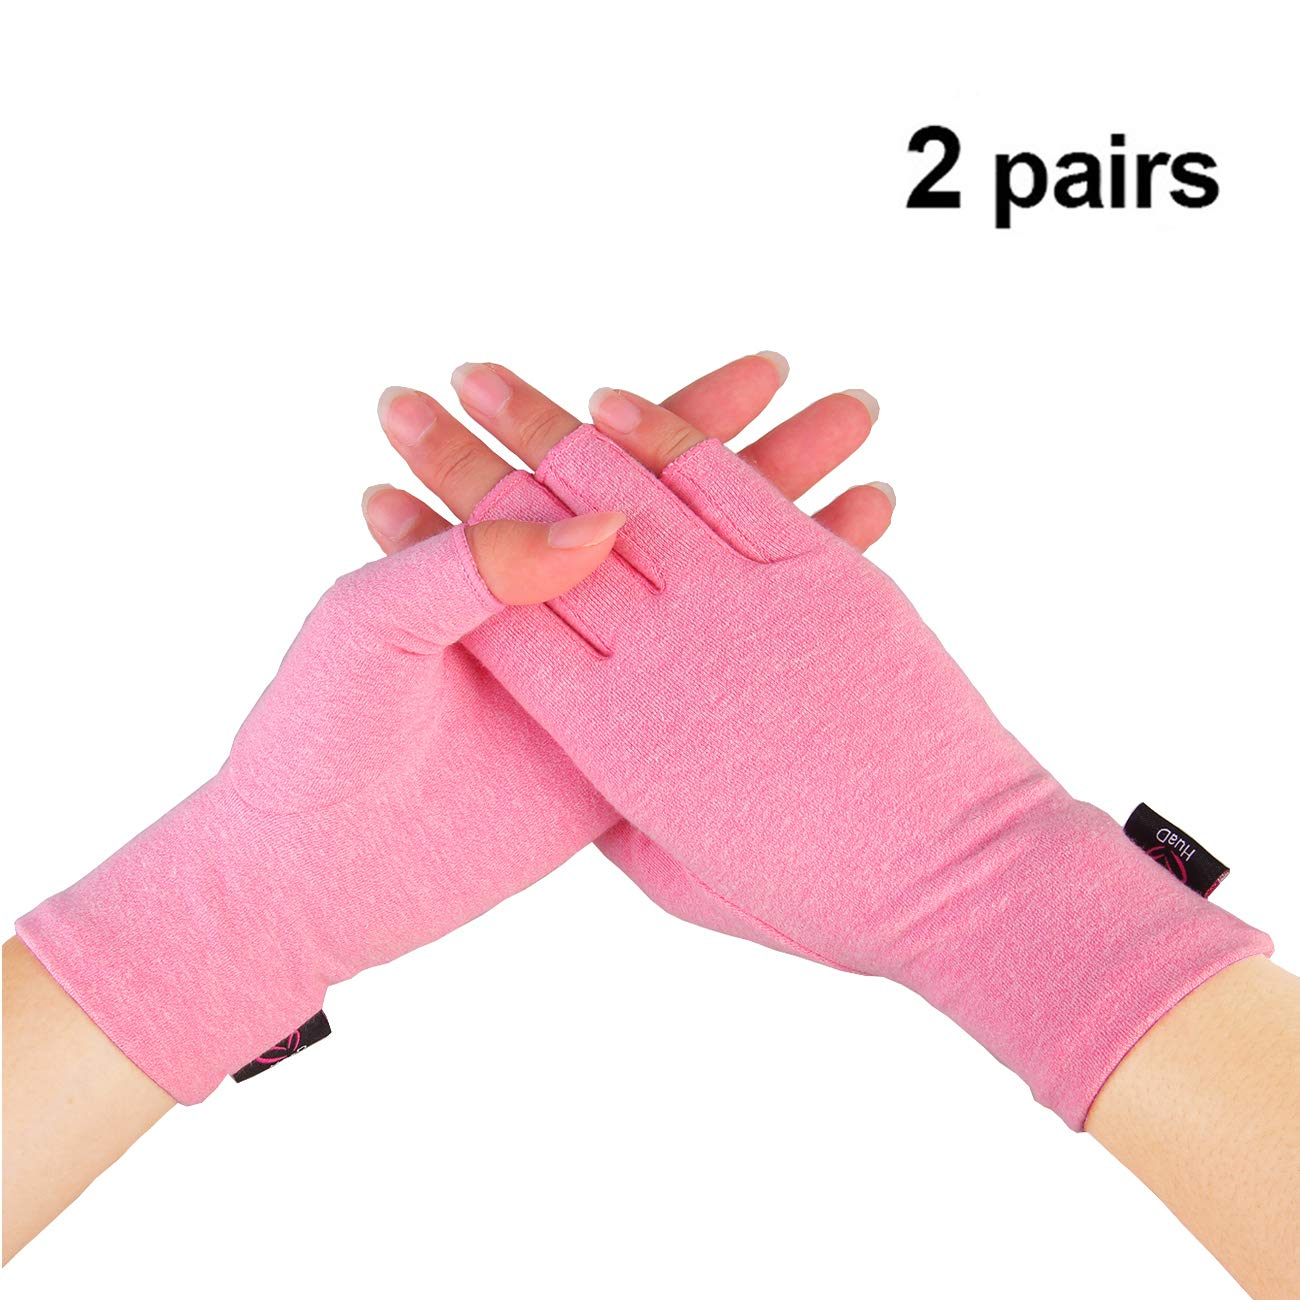 2 Pairs - Compression Arthritis Gloves for Women, Fingerless Design to Relieve Pain from Rheumatoid Arthritis and Osteoarthritis (Pink, Medium)